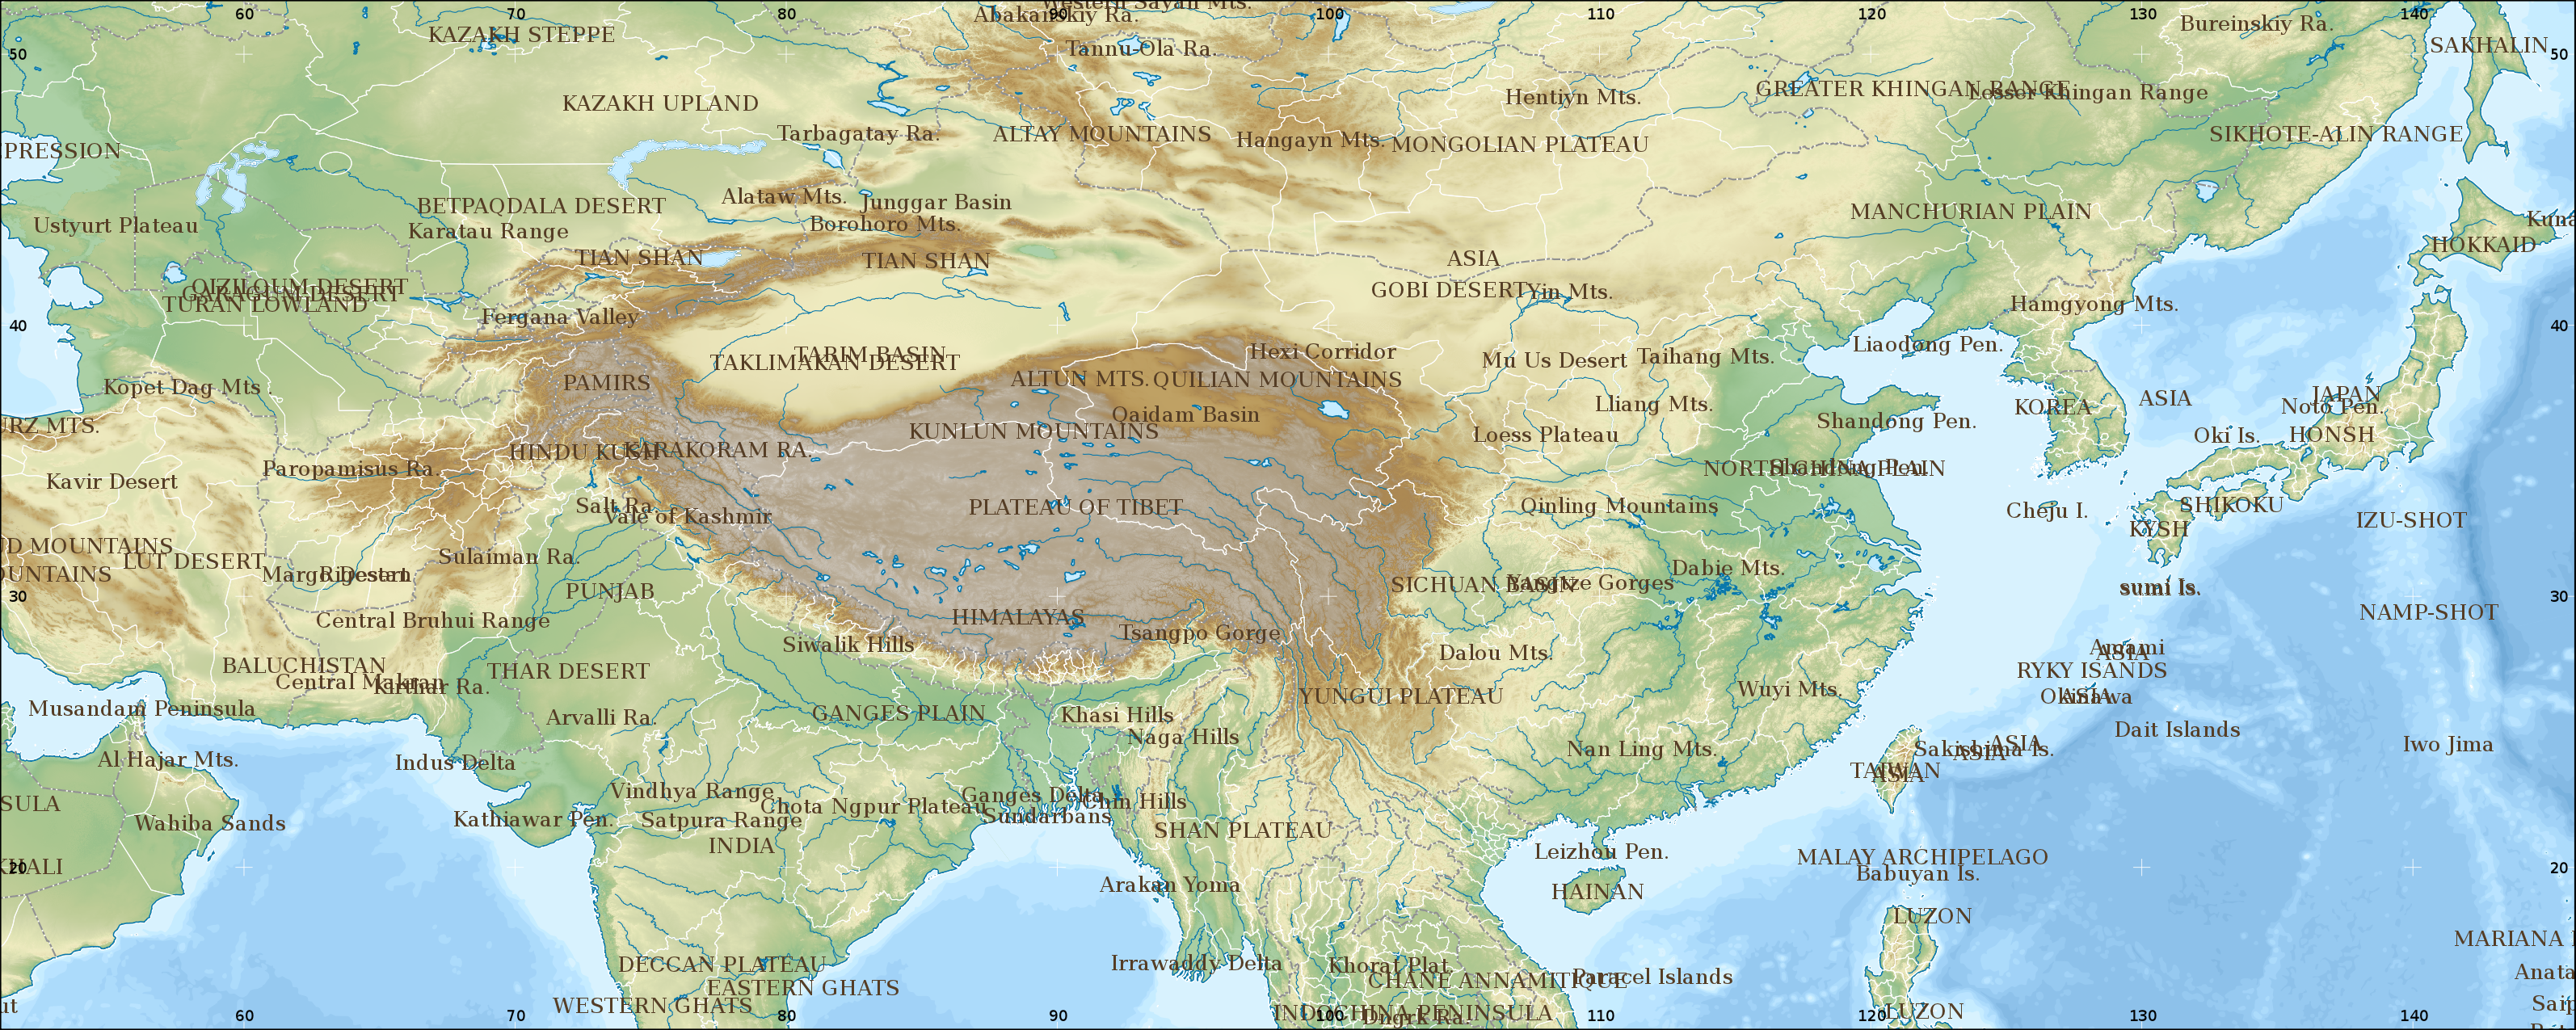 Wikipediagraphics labmap workshopchinagithub wikipedia mediachinese history large 51e146w 14n52n grey topography borders labelsg gumiabroncs Choice Image